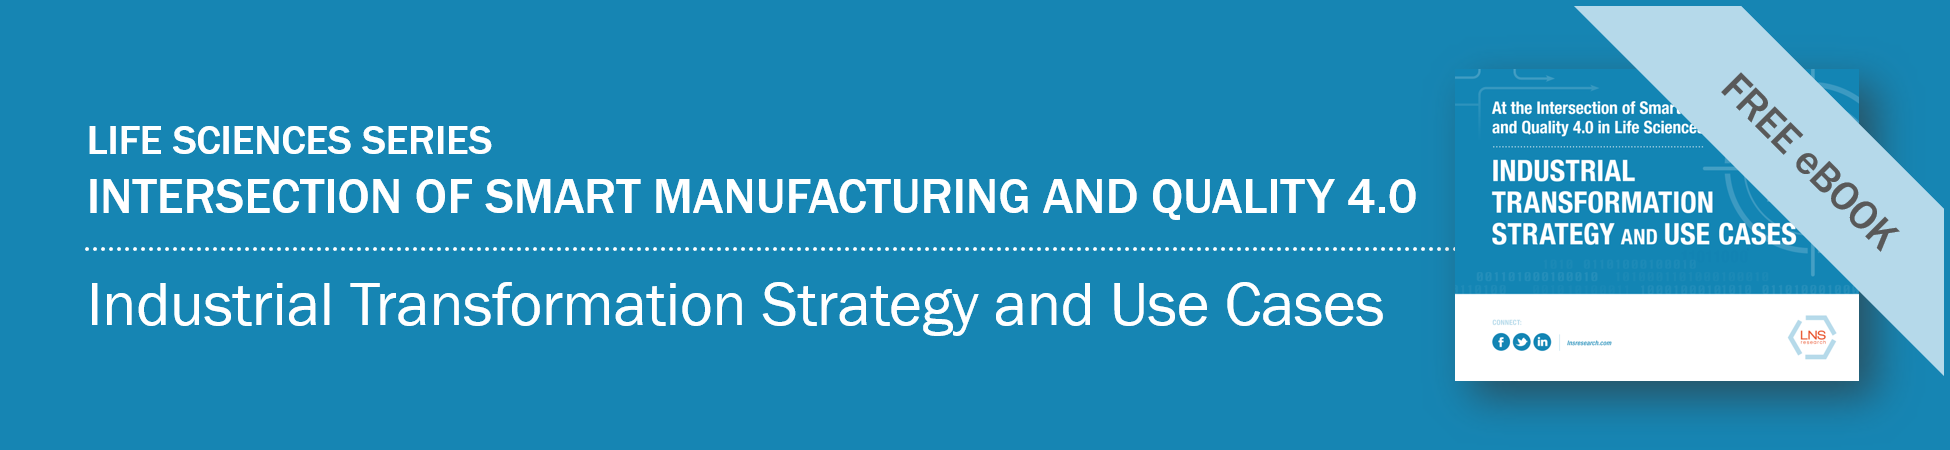 eBook | Intersection of Smart Manufacturing and Quality 4.0: Industrial Transformation Strategy and Use Cases